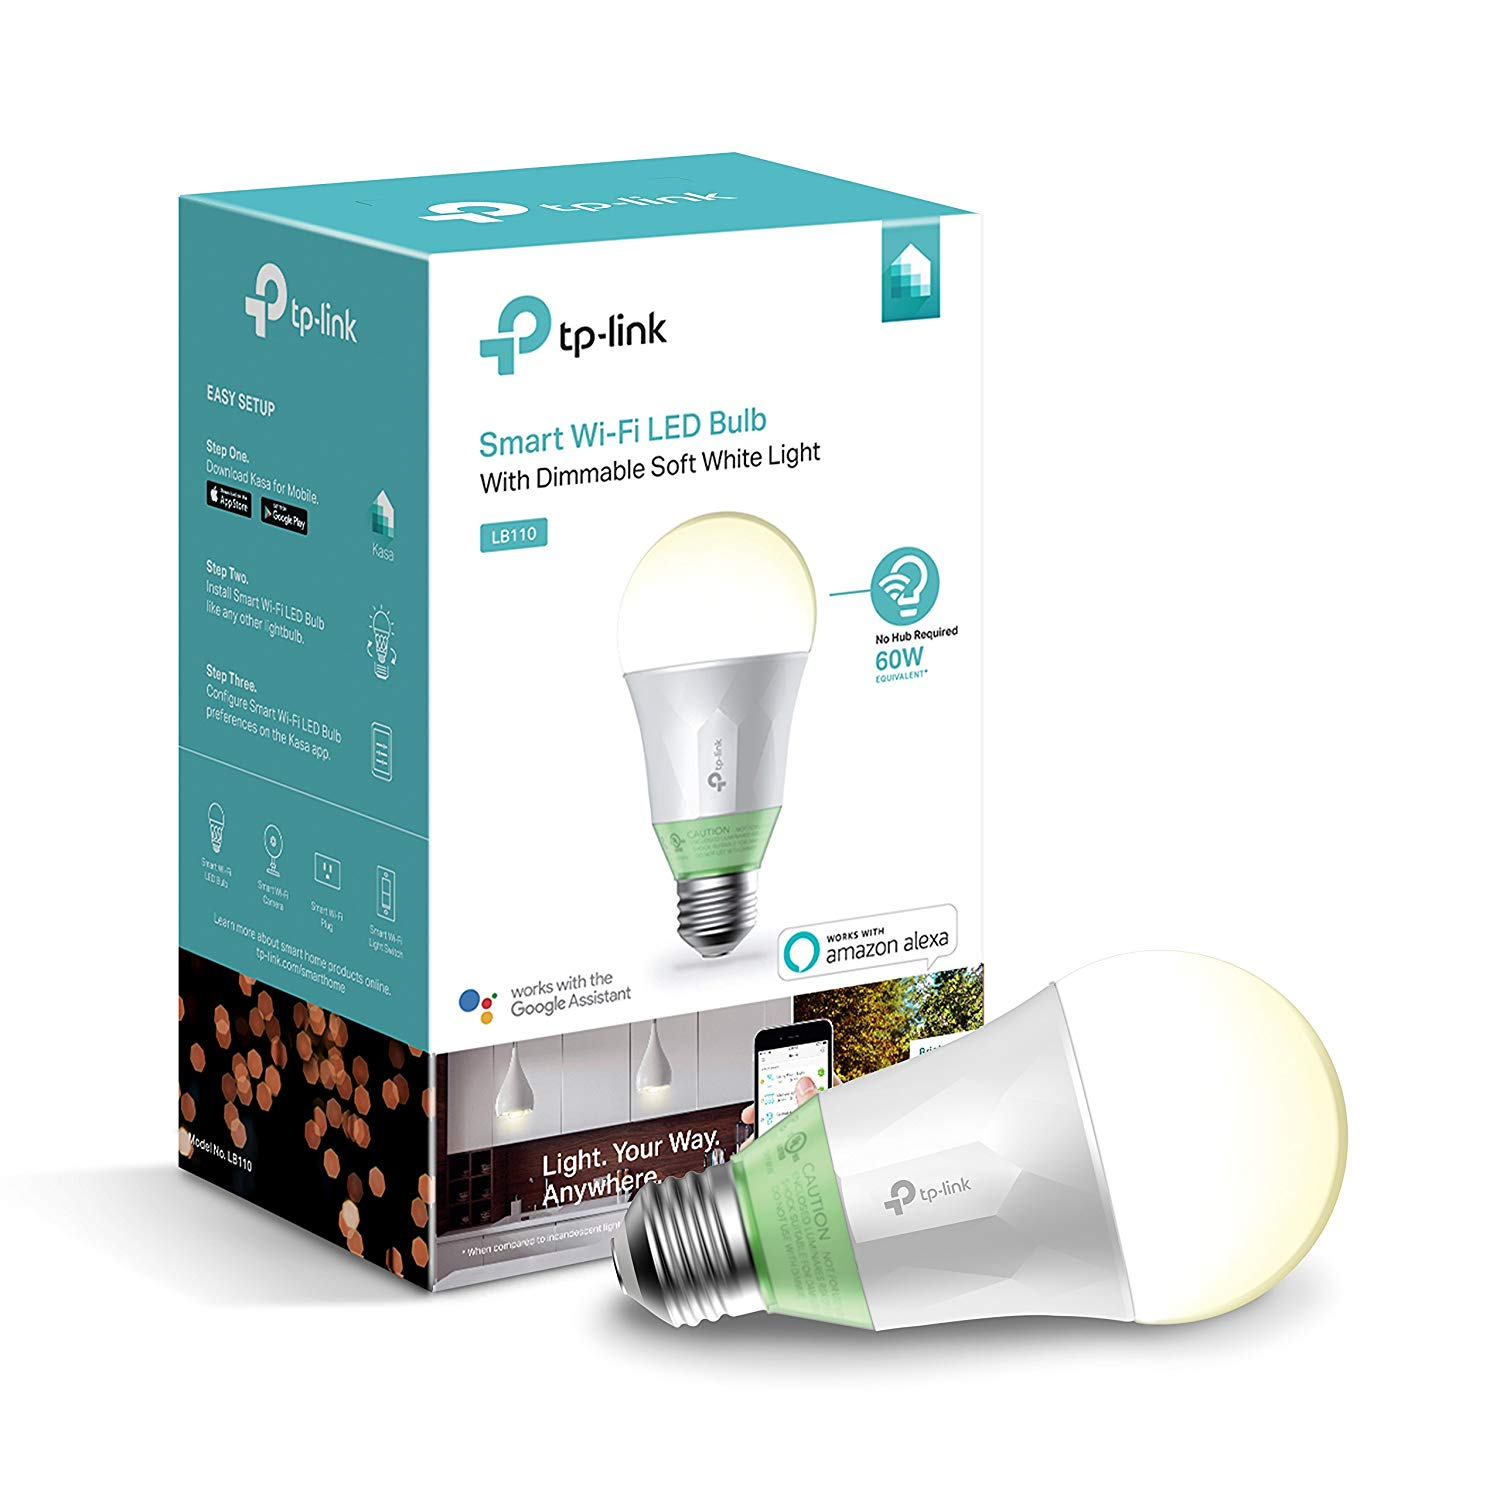 2 Pack Kasa Smart Wi-Fi LED Soft White Dimmable Light Bulb A19 Works with Alexa, Google LB110